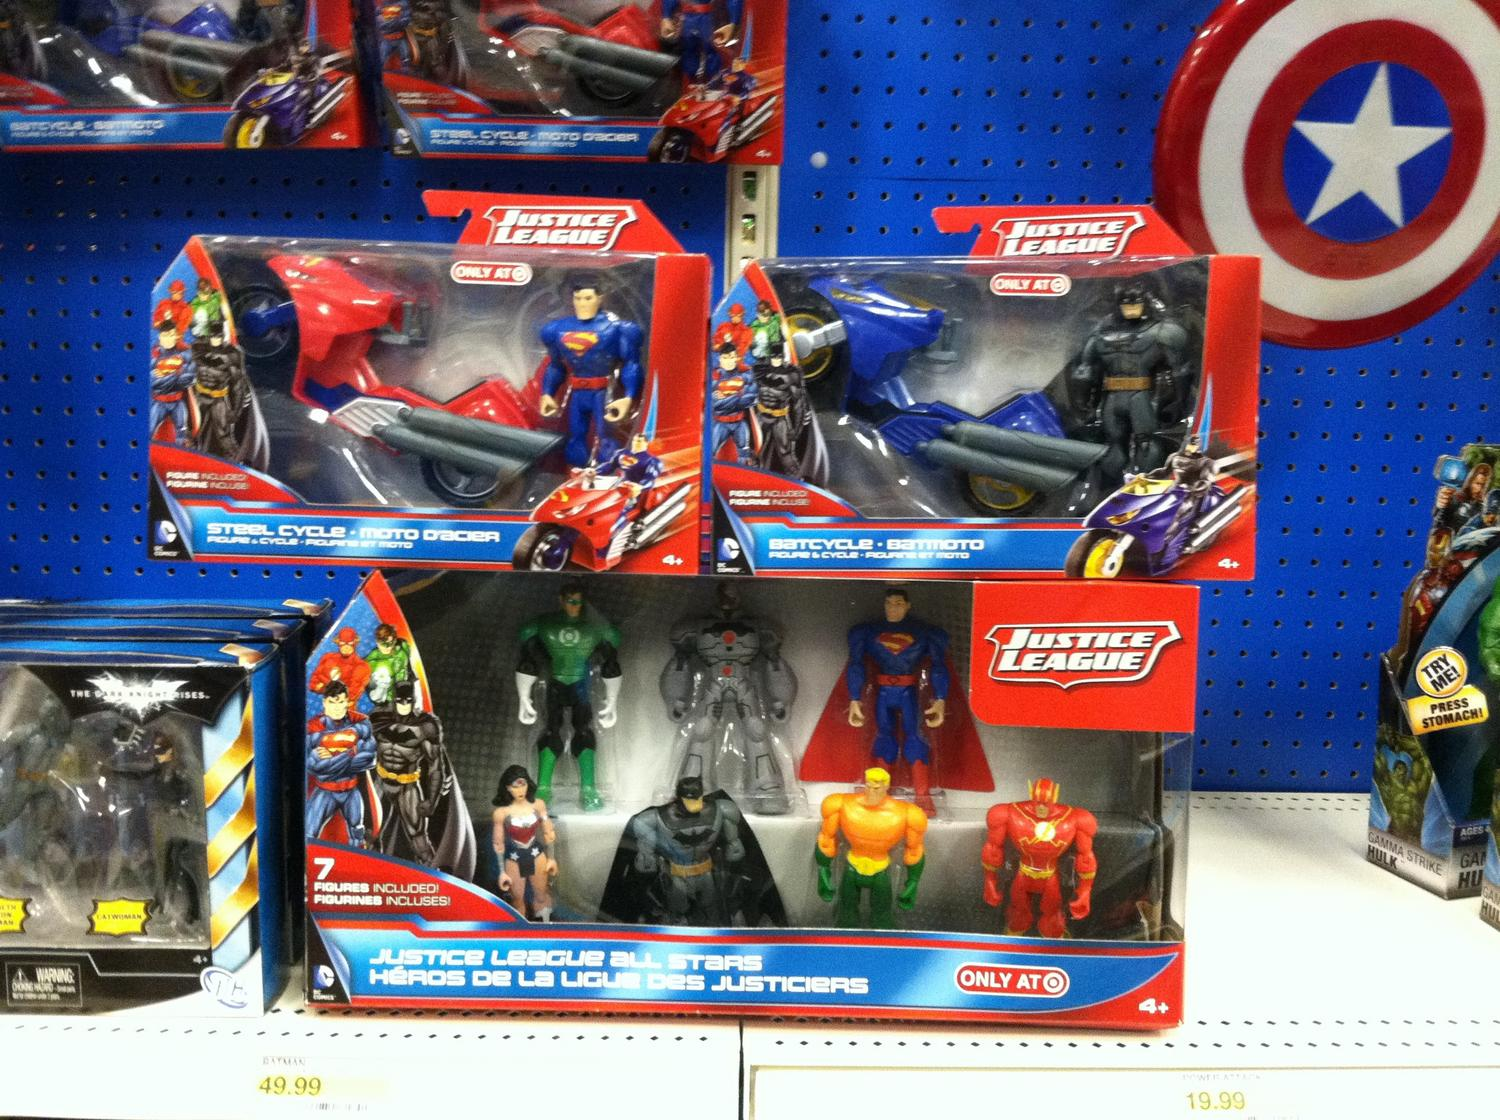 Toys From Target : Target exclusive justice league figures found the toyark news